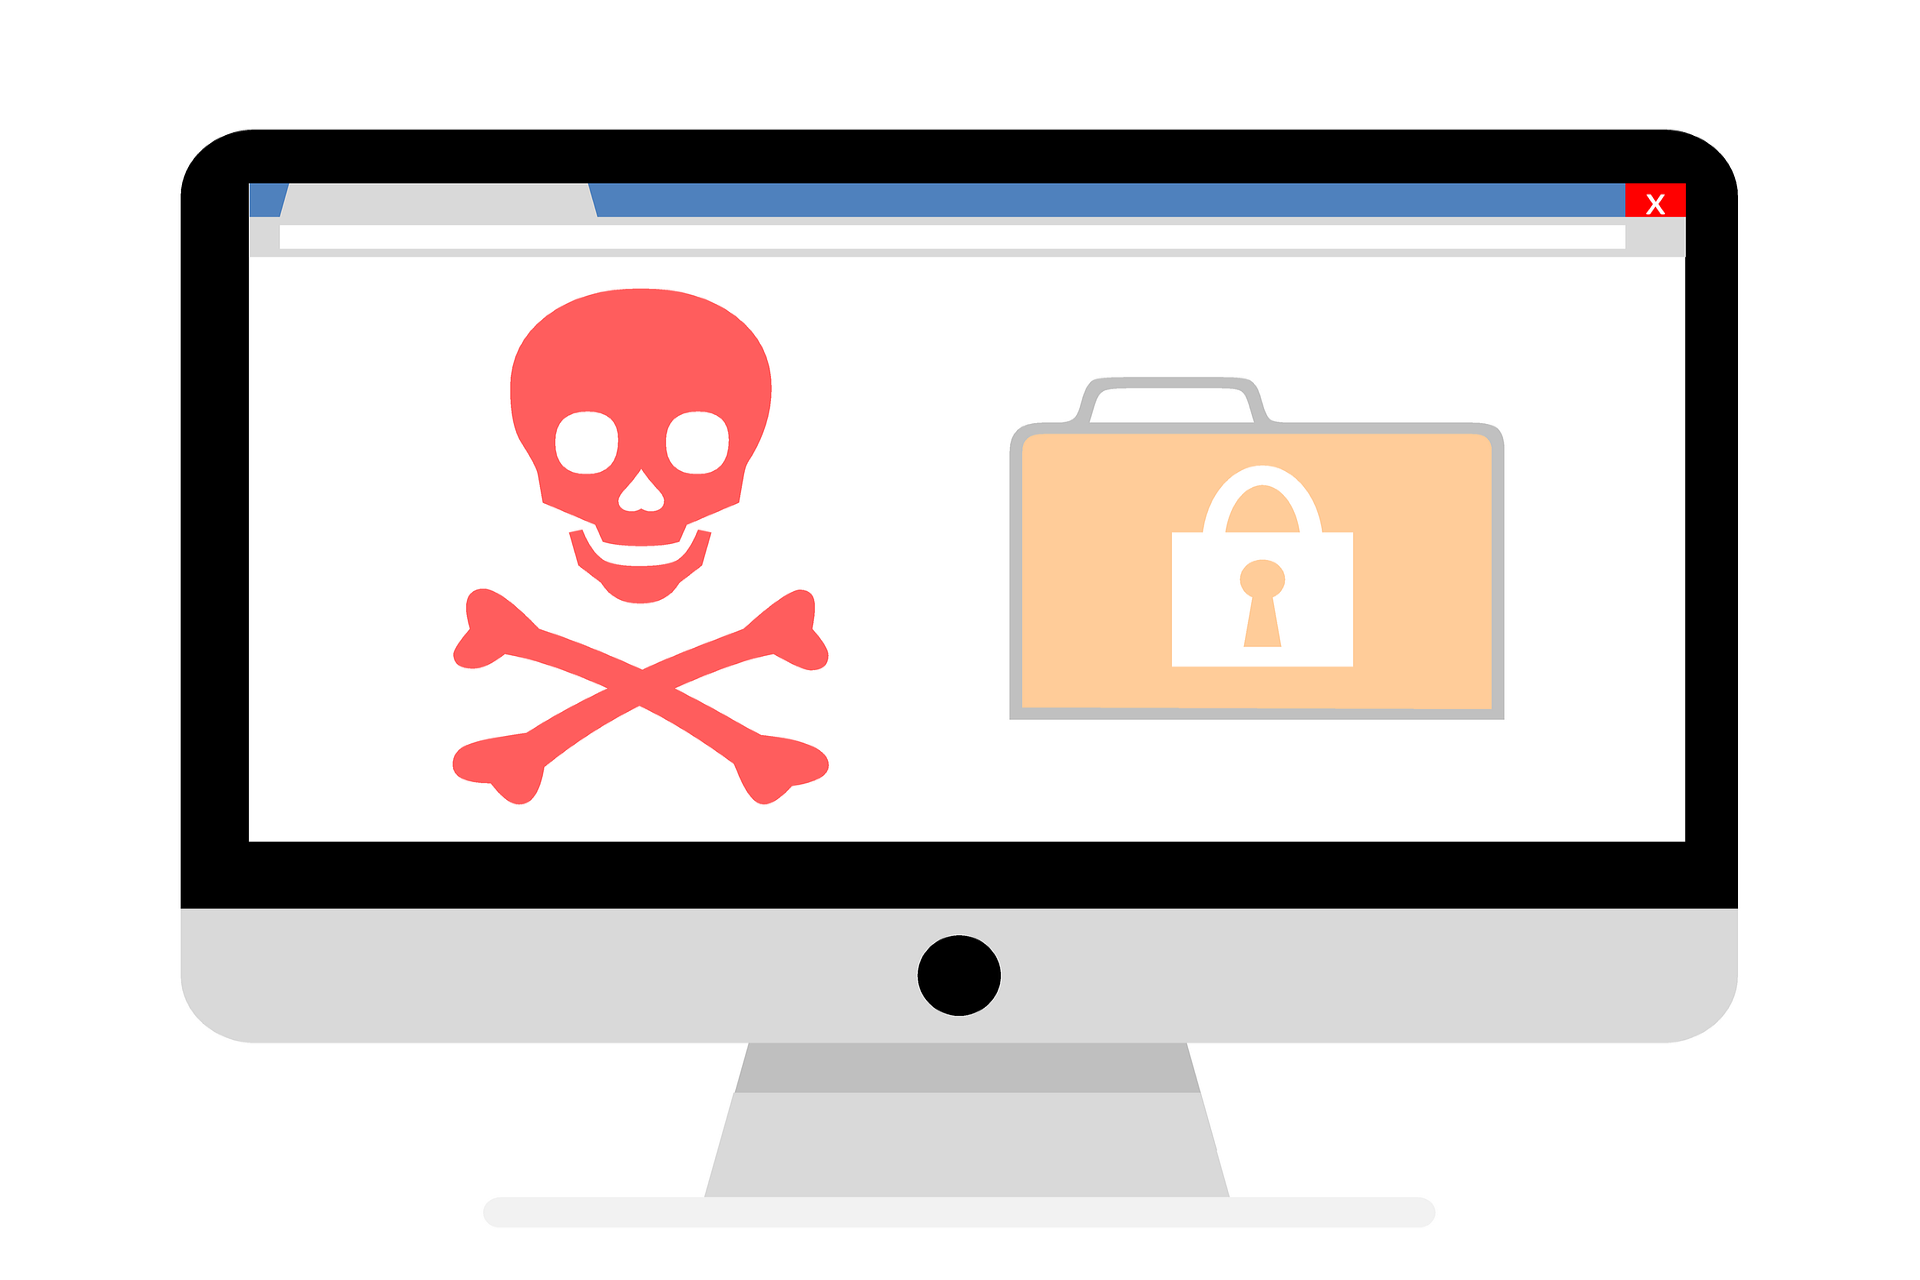 credit-card-malware-found-within-social-media-buttons